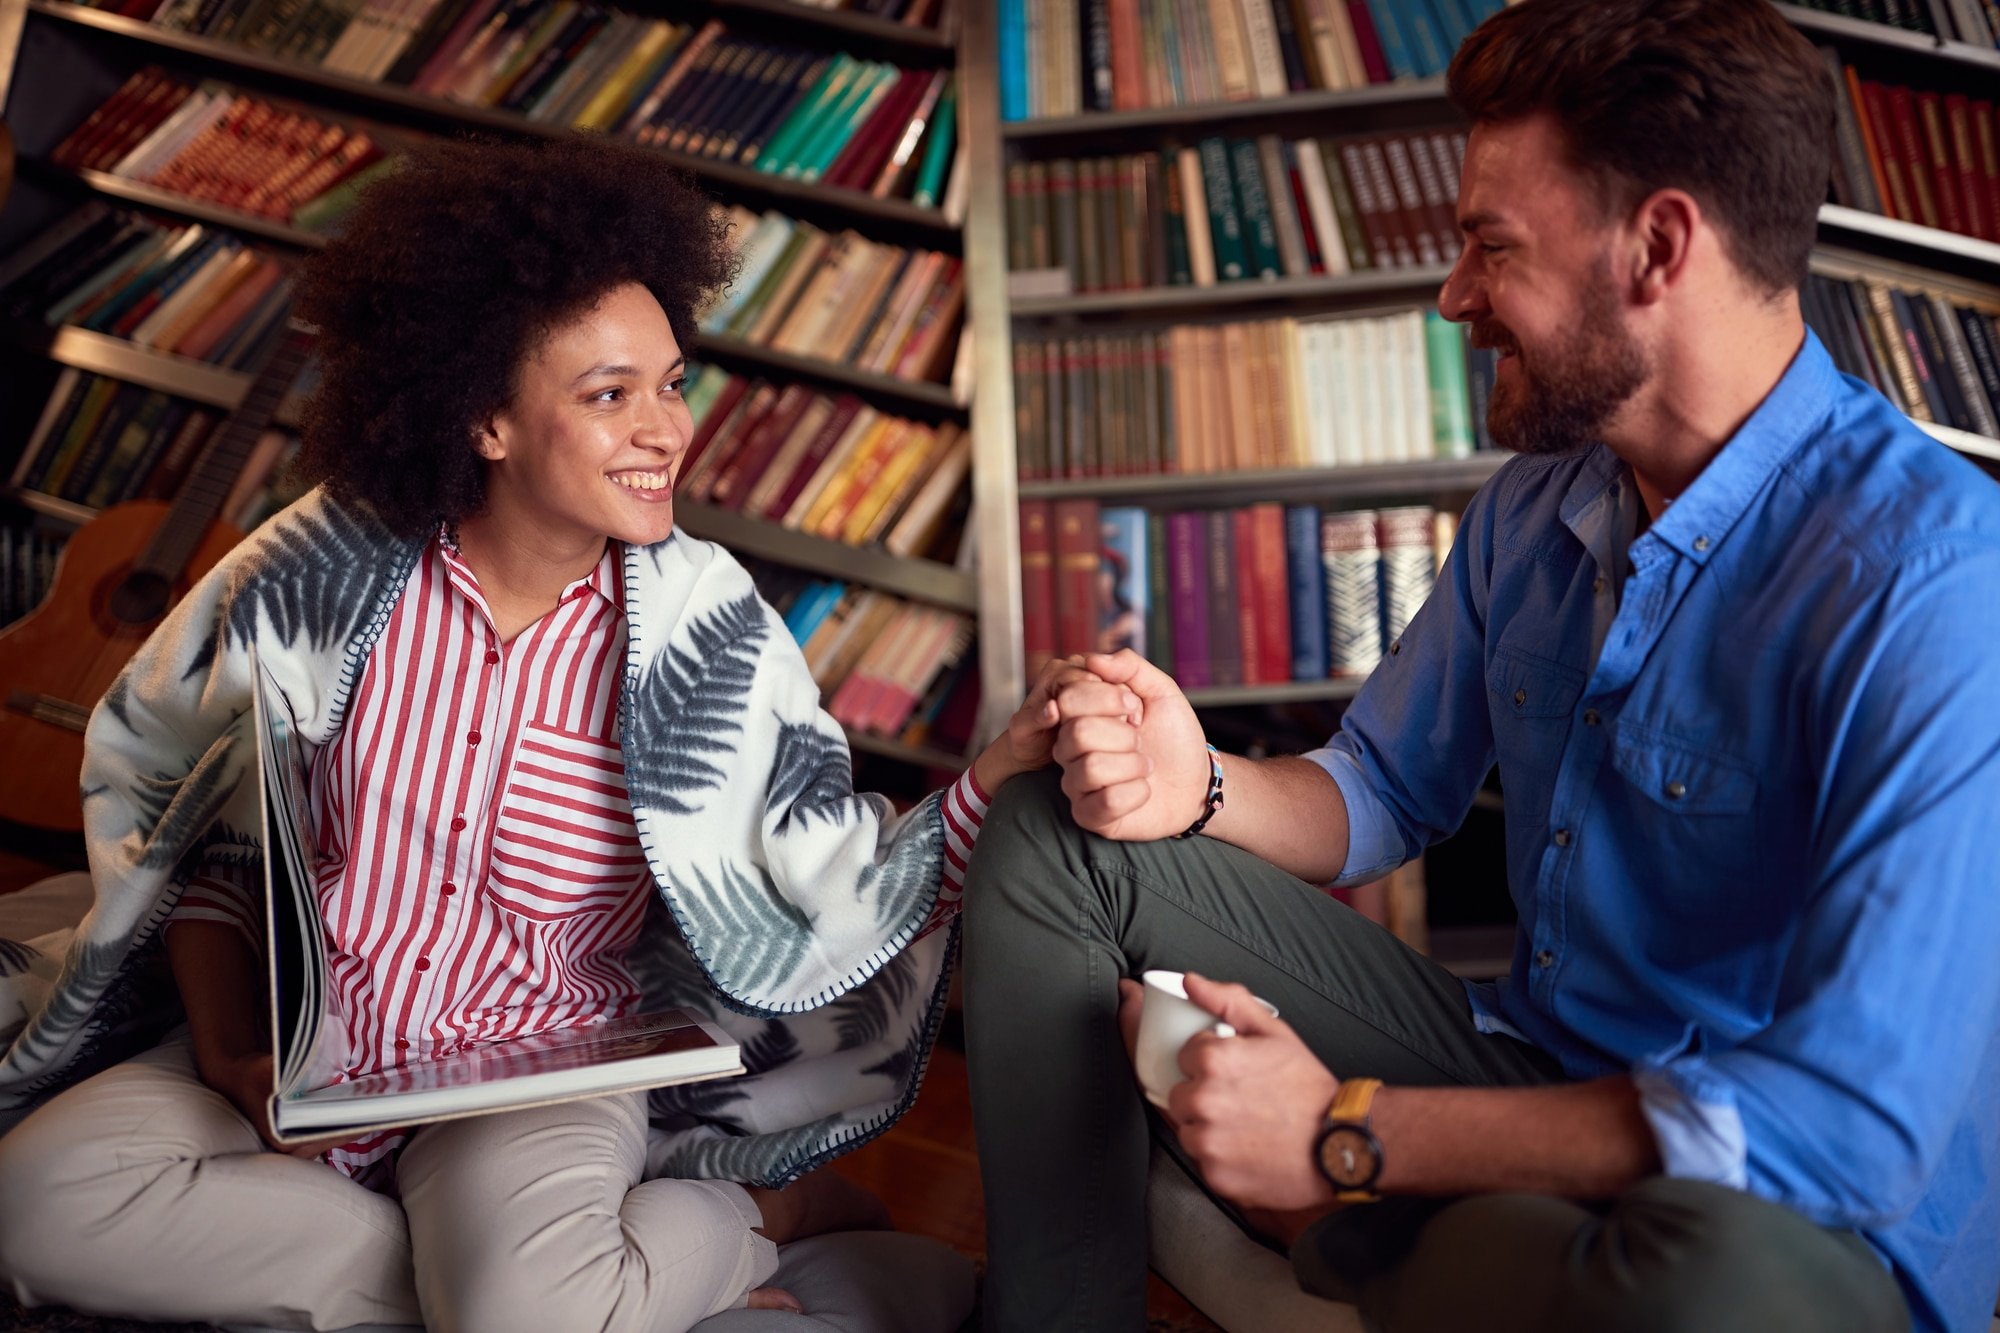 Romantic smiling man and woman enjoying at home reading a book.